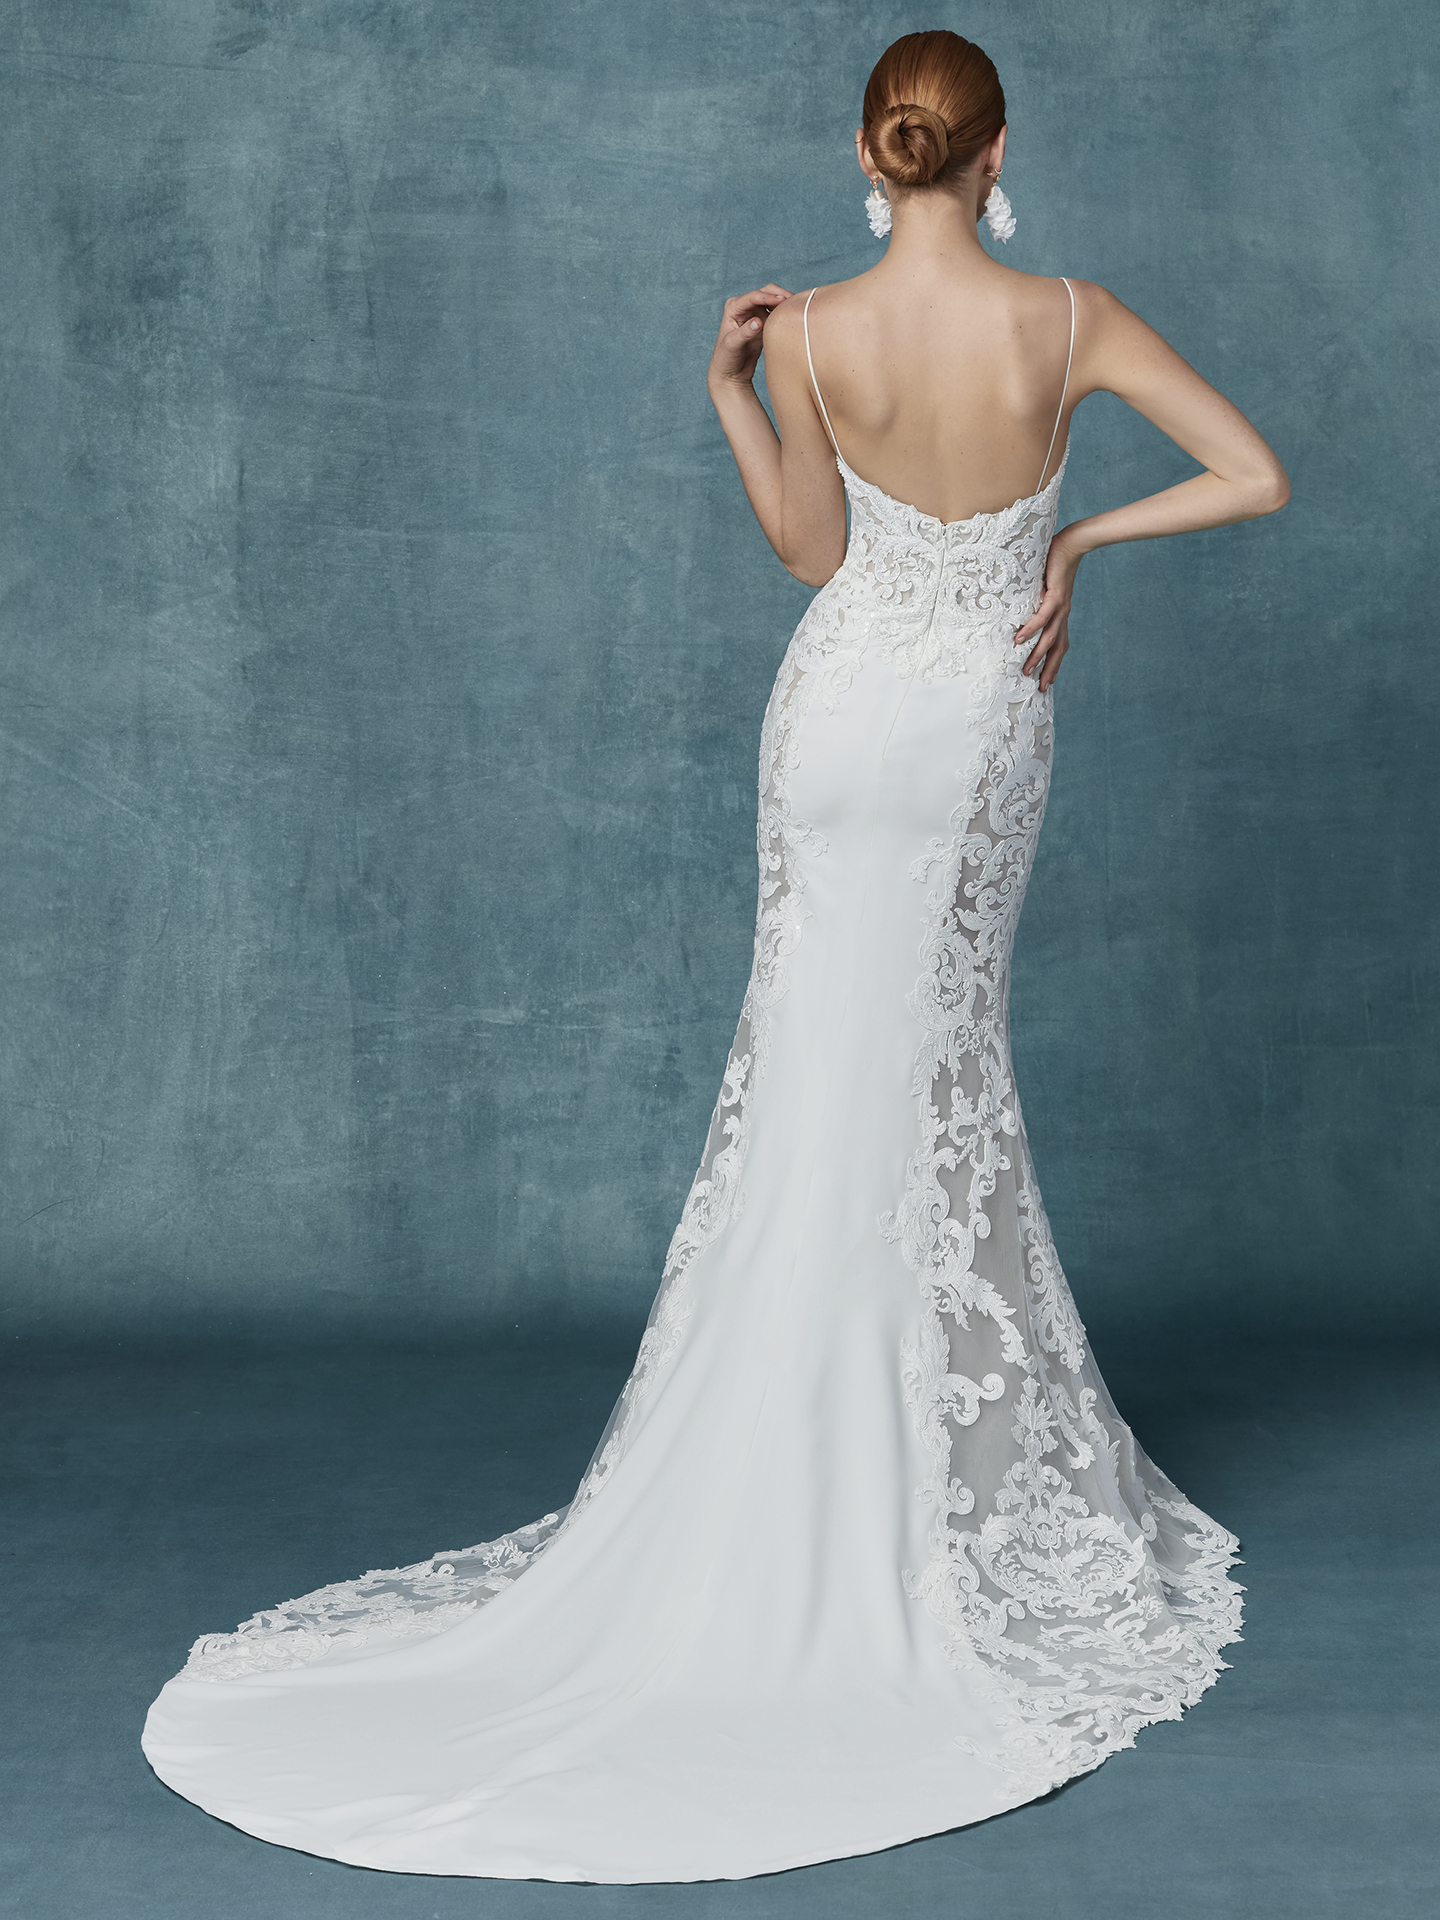 Maggie Sottero - Darshana - Back View